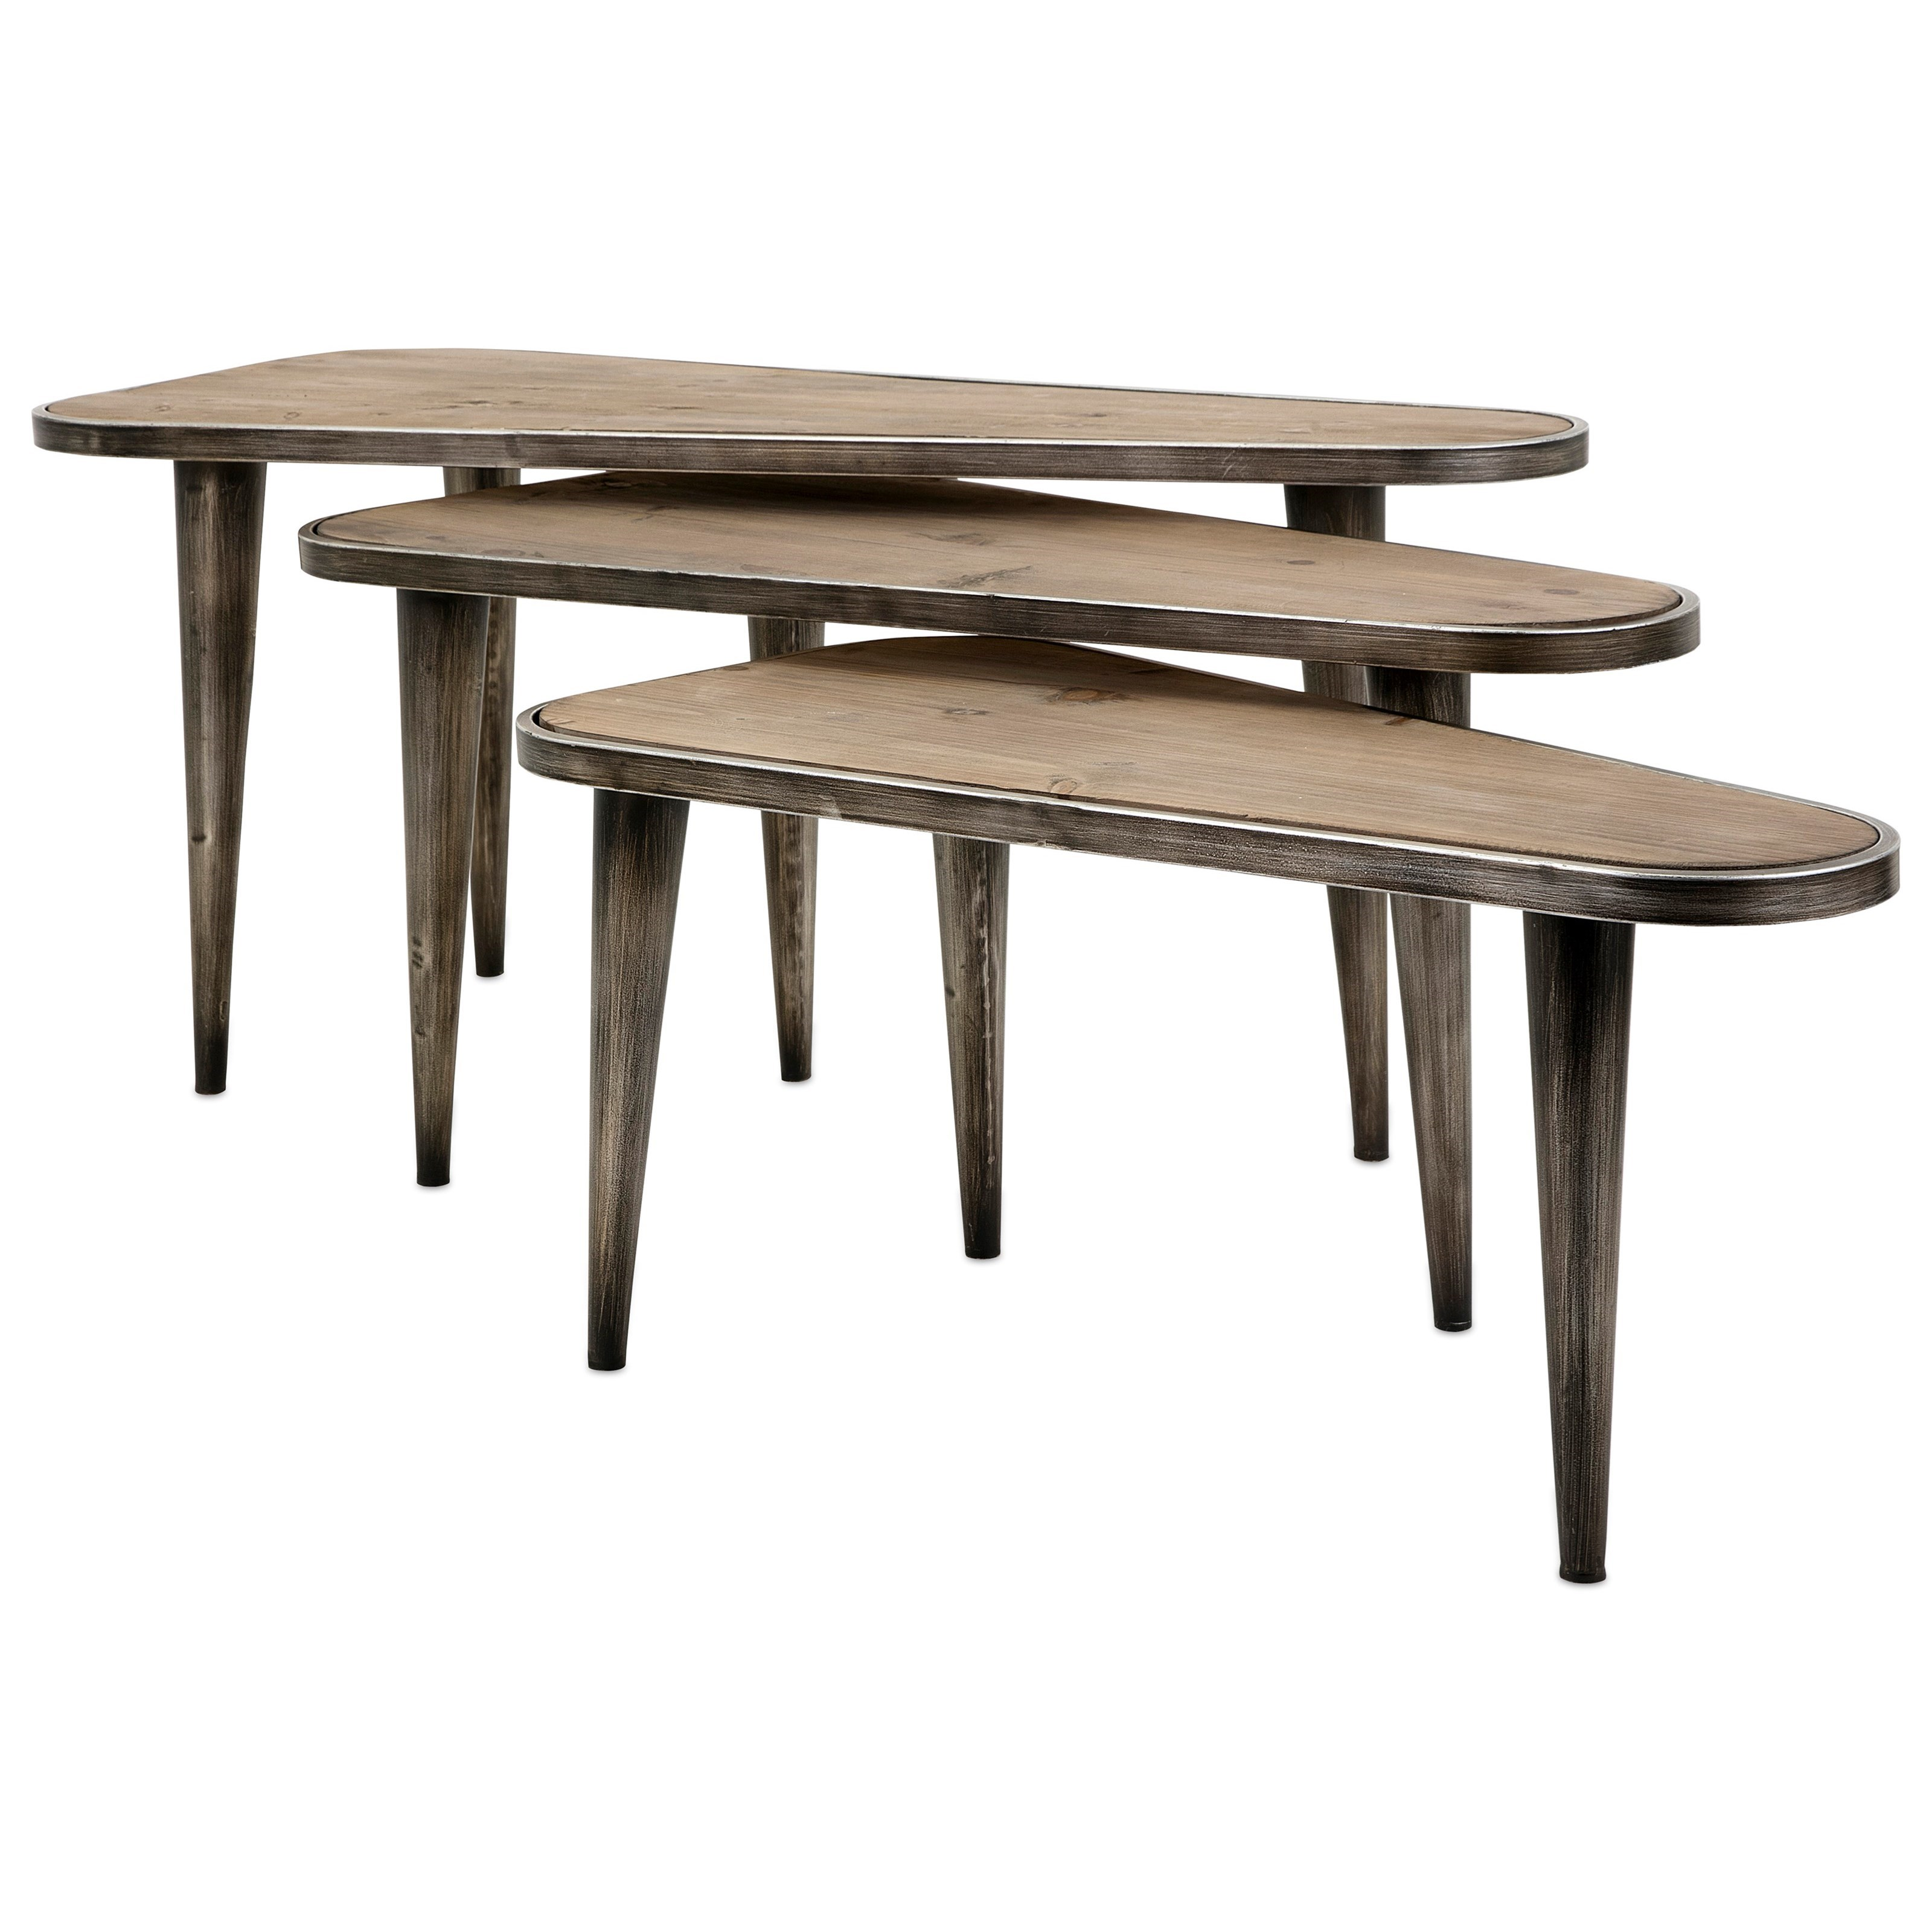 Accent Tables and Cabinets Oliver Wood and Metal Tables - Set of 3 by IMAX Worldwide Home at Alison Craig Home Furnishings